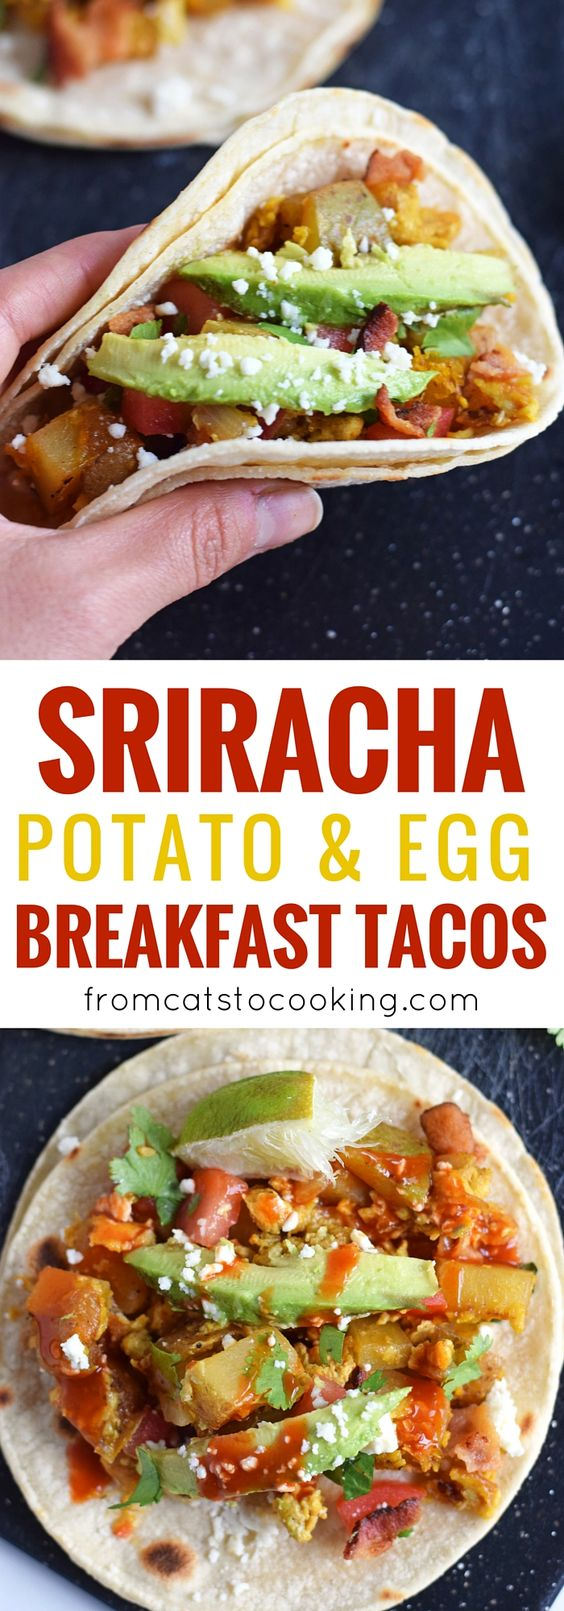 ... eggs paleo brunch breakfast tacos tacos dishes brunch recipes recipe